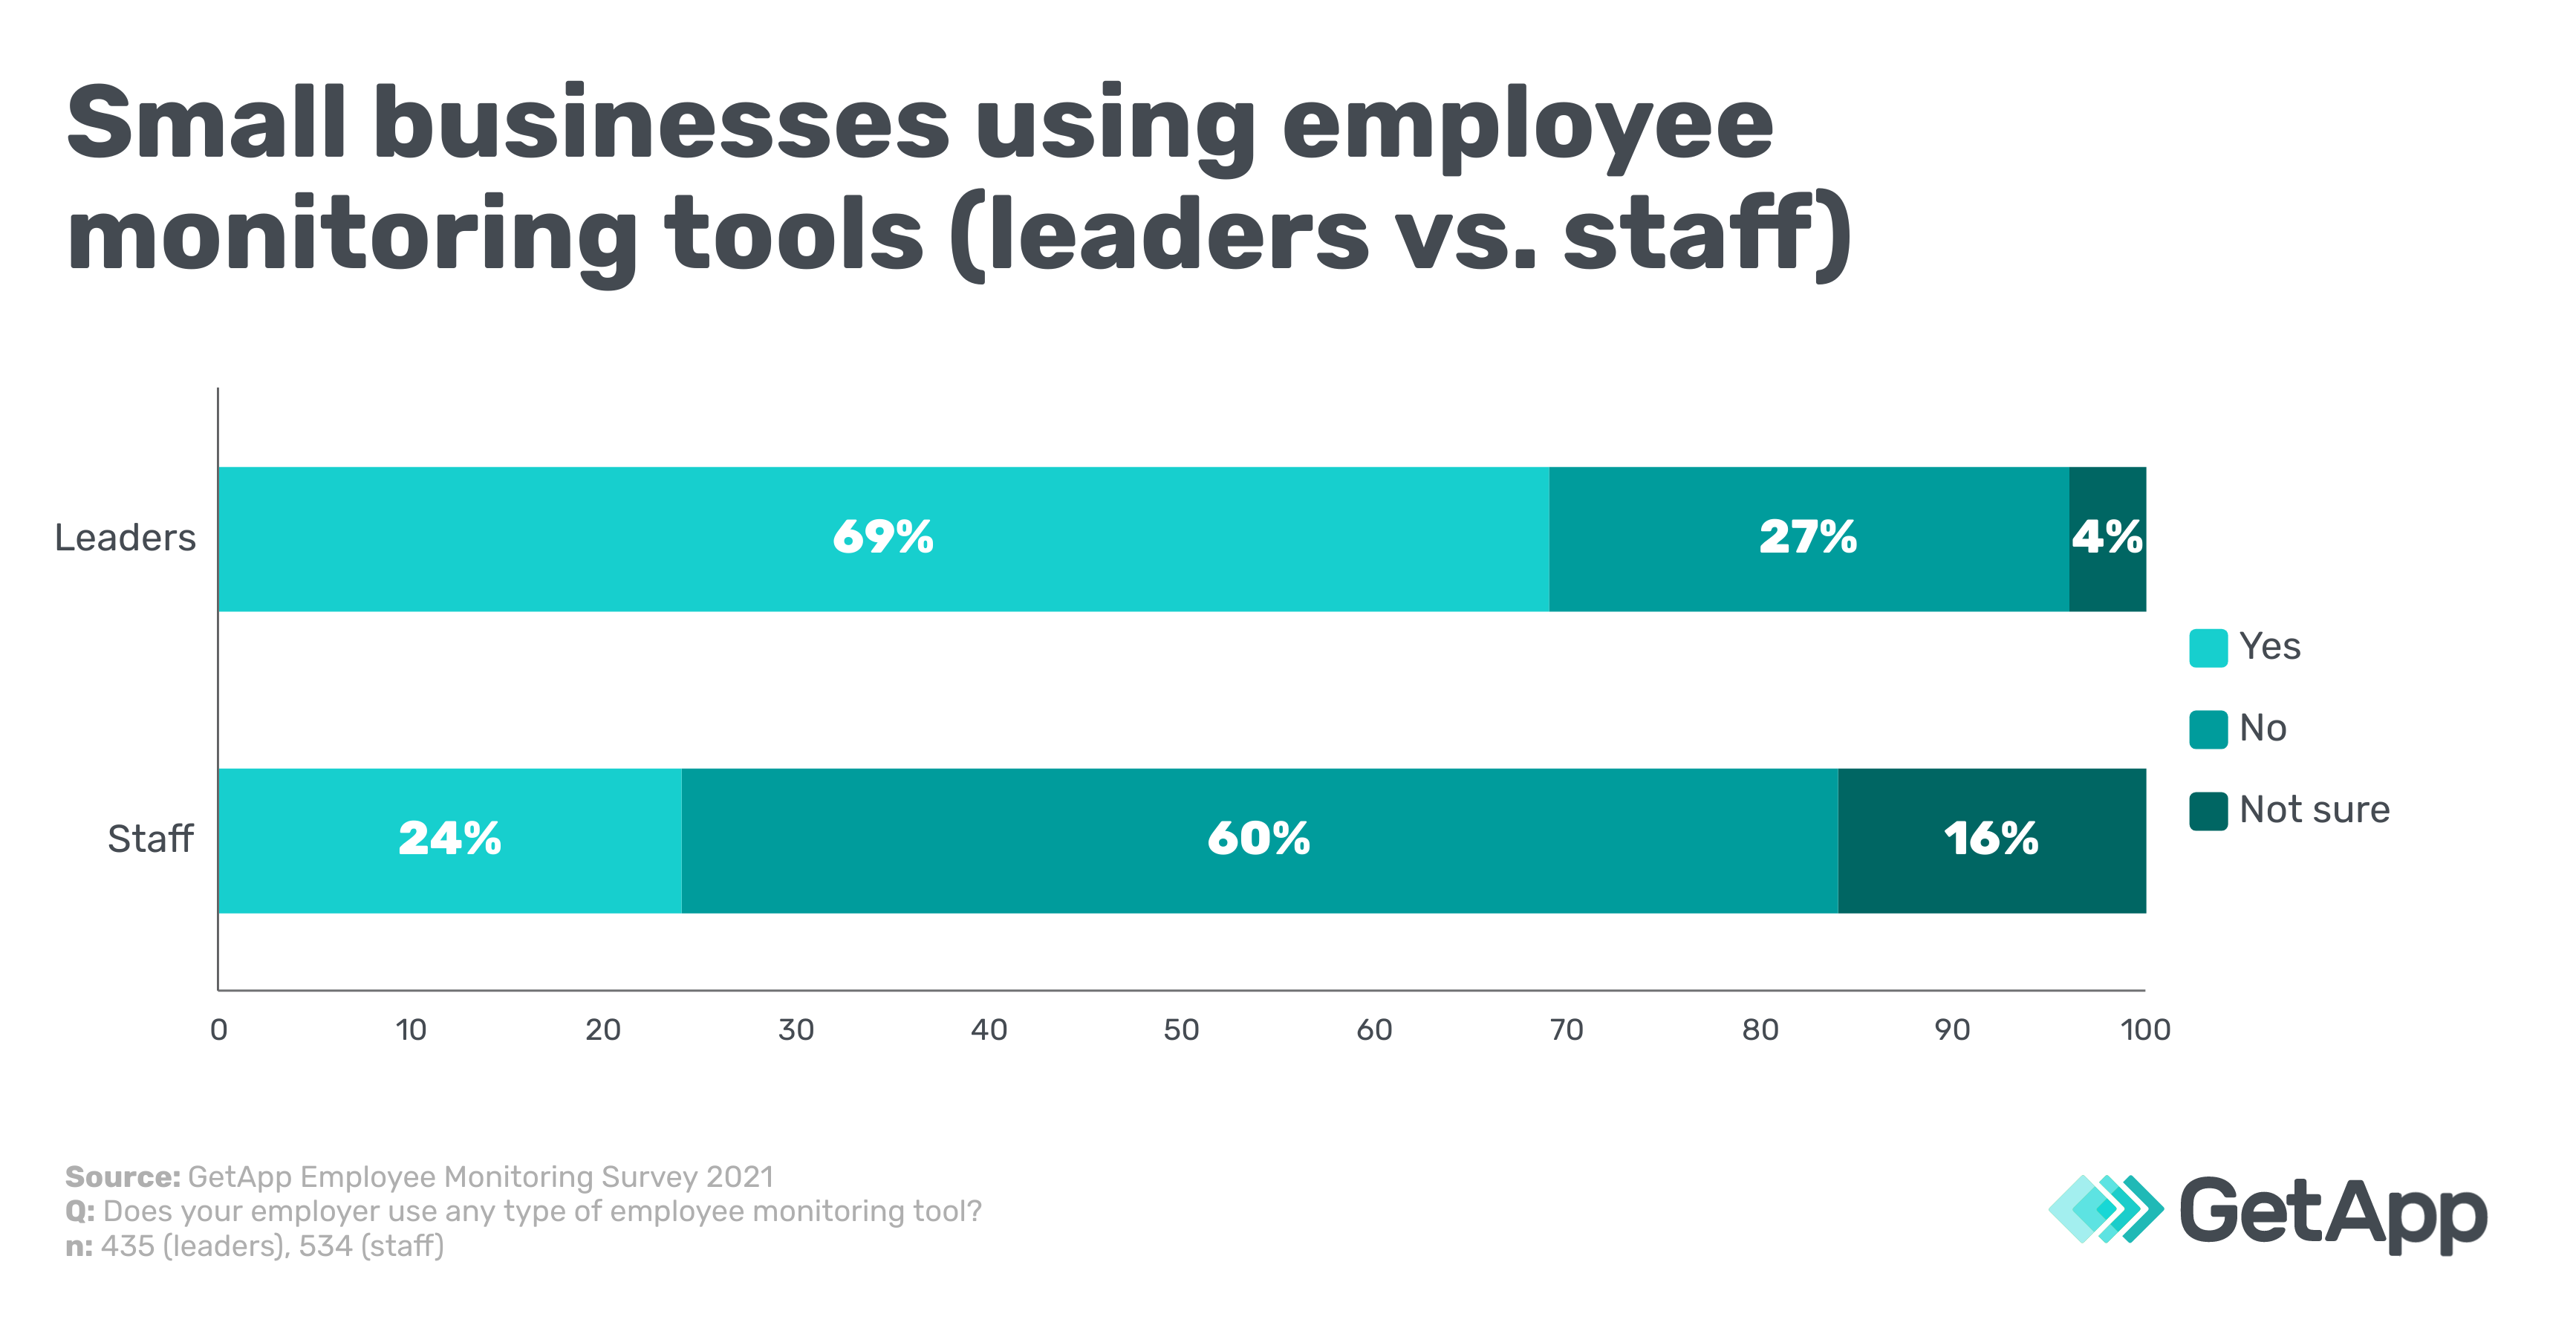 Small businesses using employee monitoring tools (leaders vs. staff)